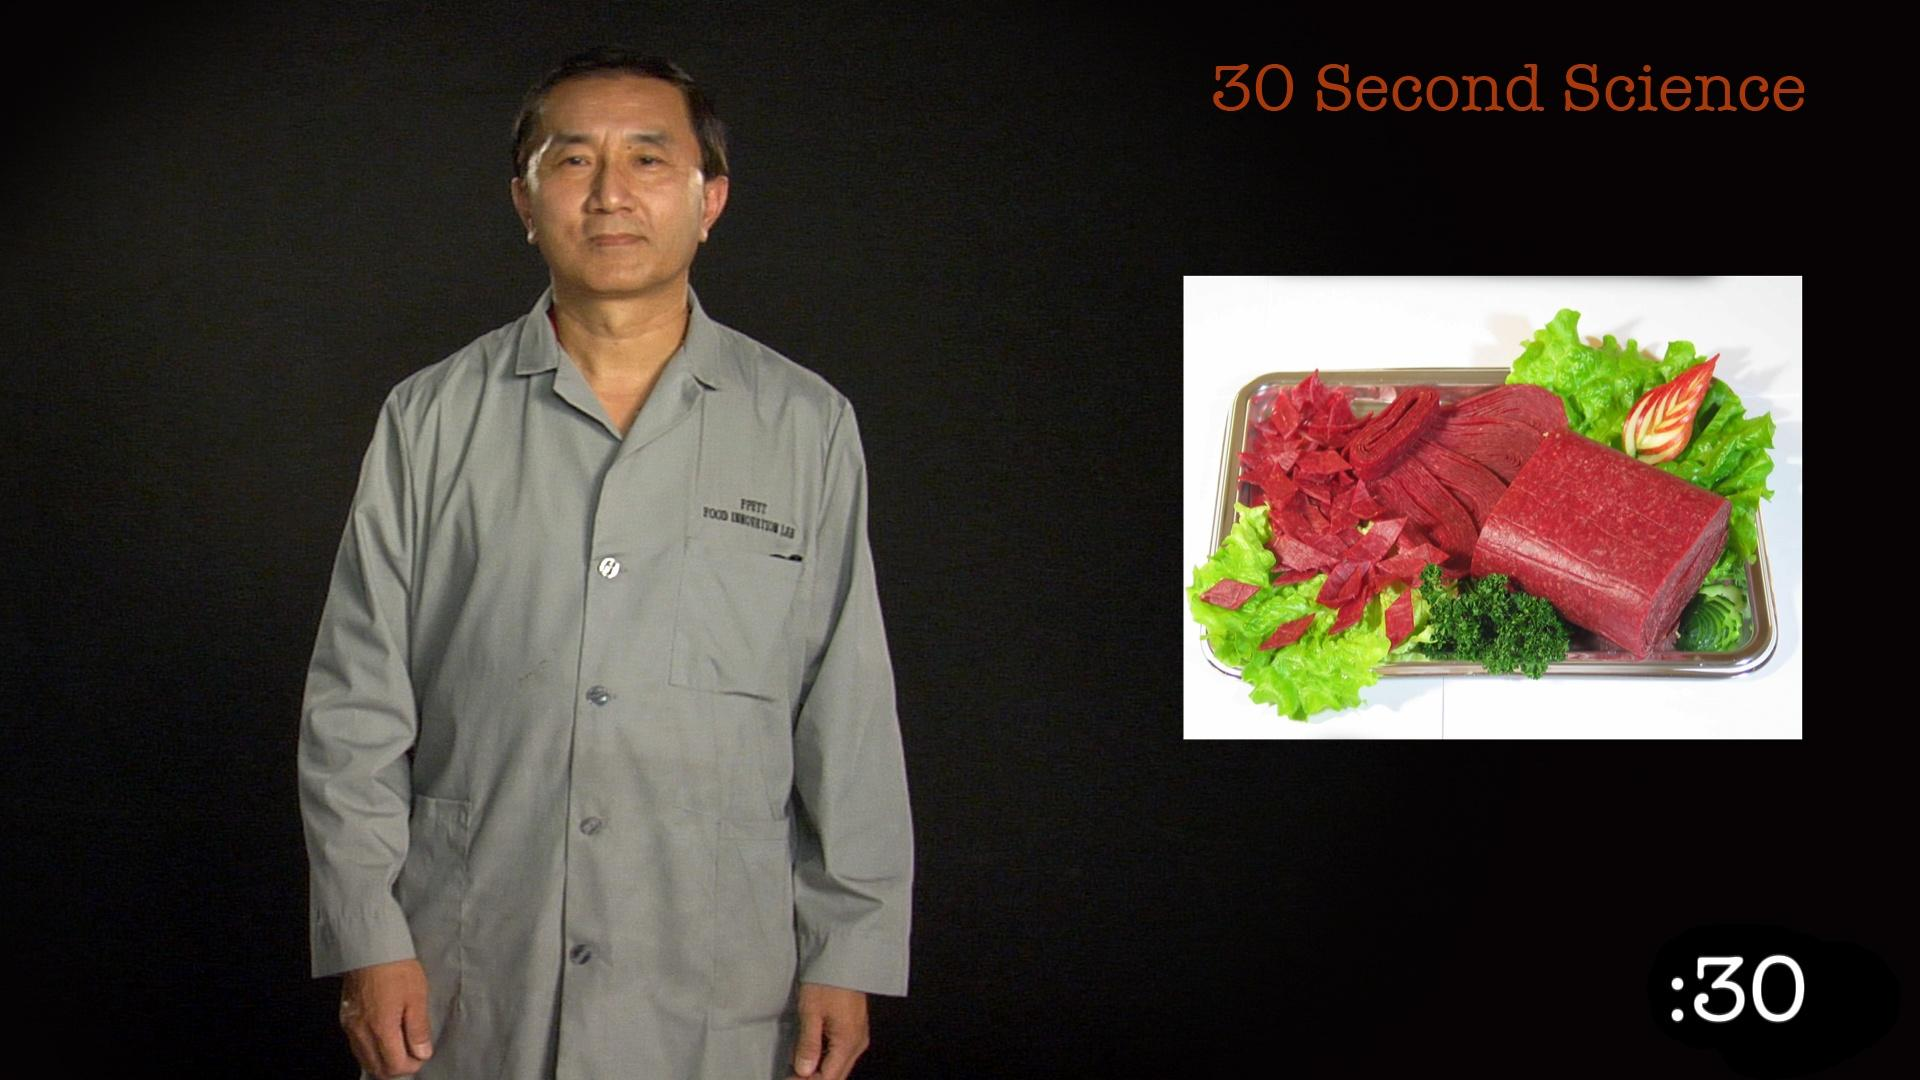 30 Second Science: Tom Yang image